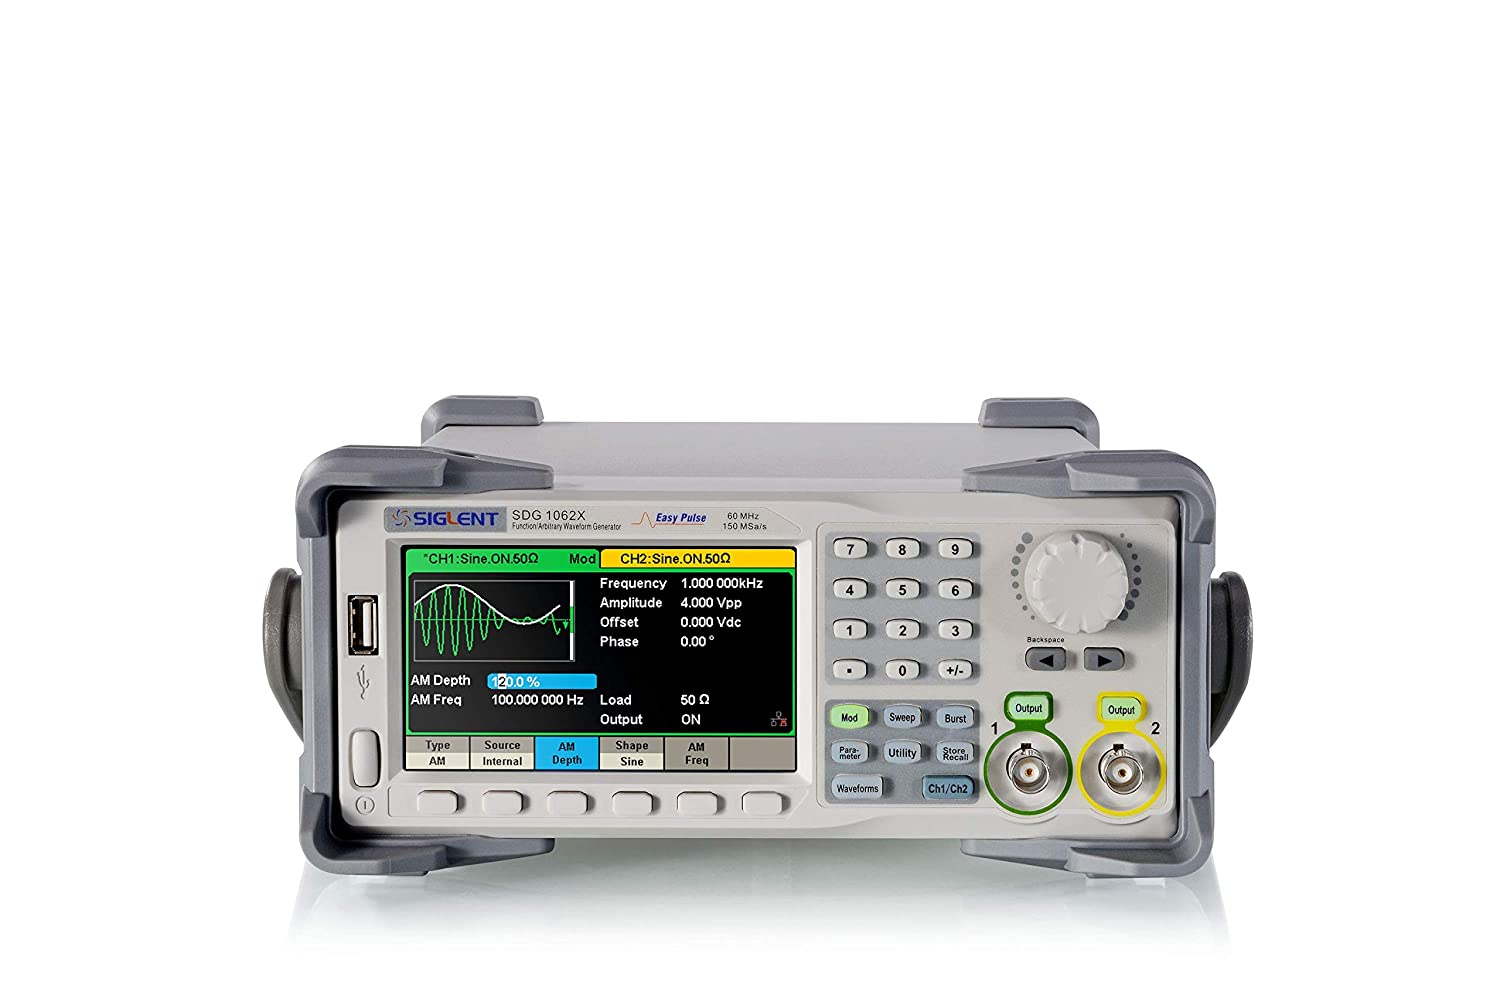 Siglent Technologies SDG1062X Series Dual-Channel Function//Arbitrary Waveform generators